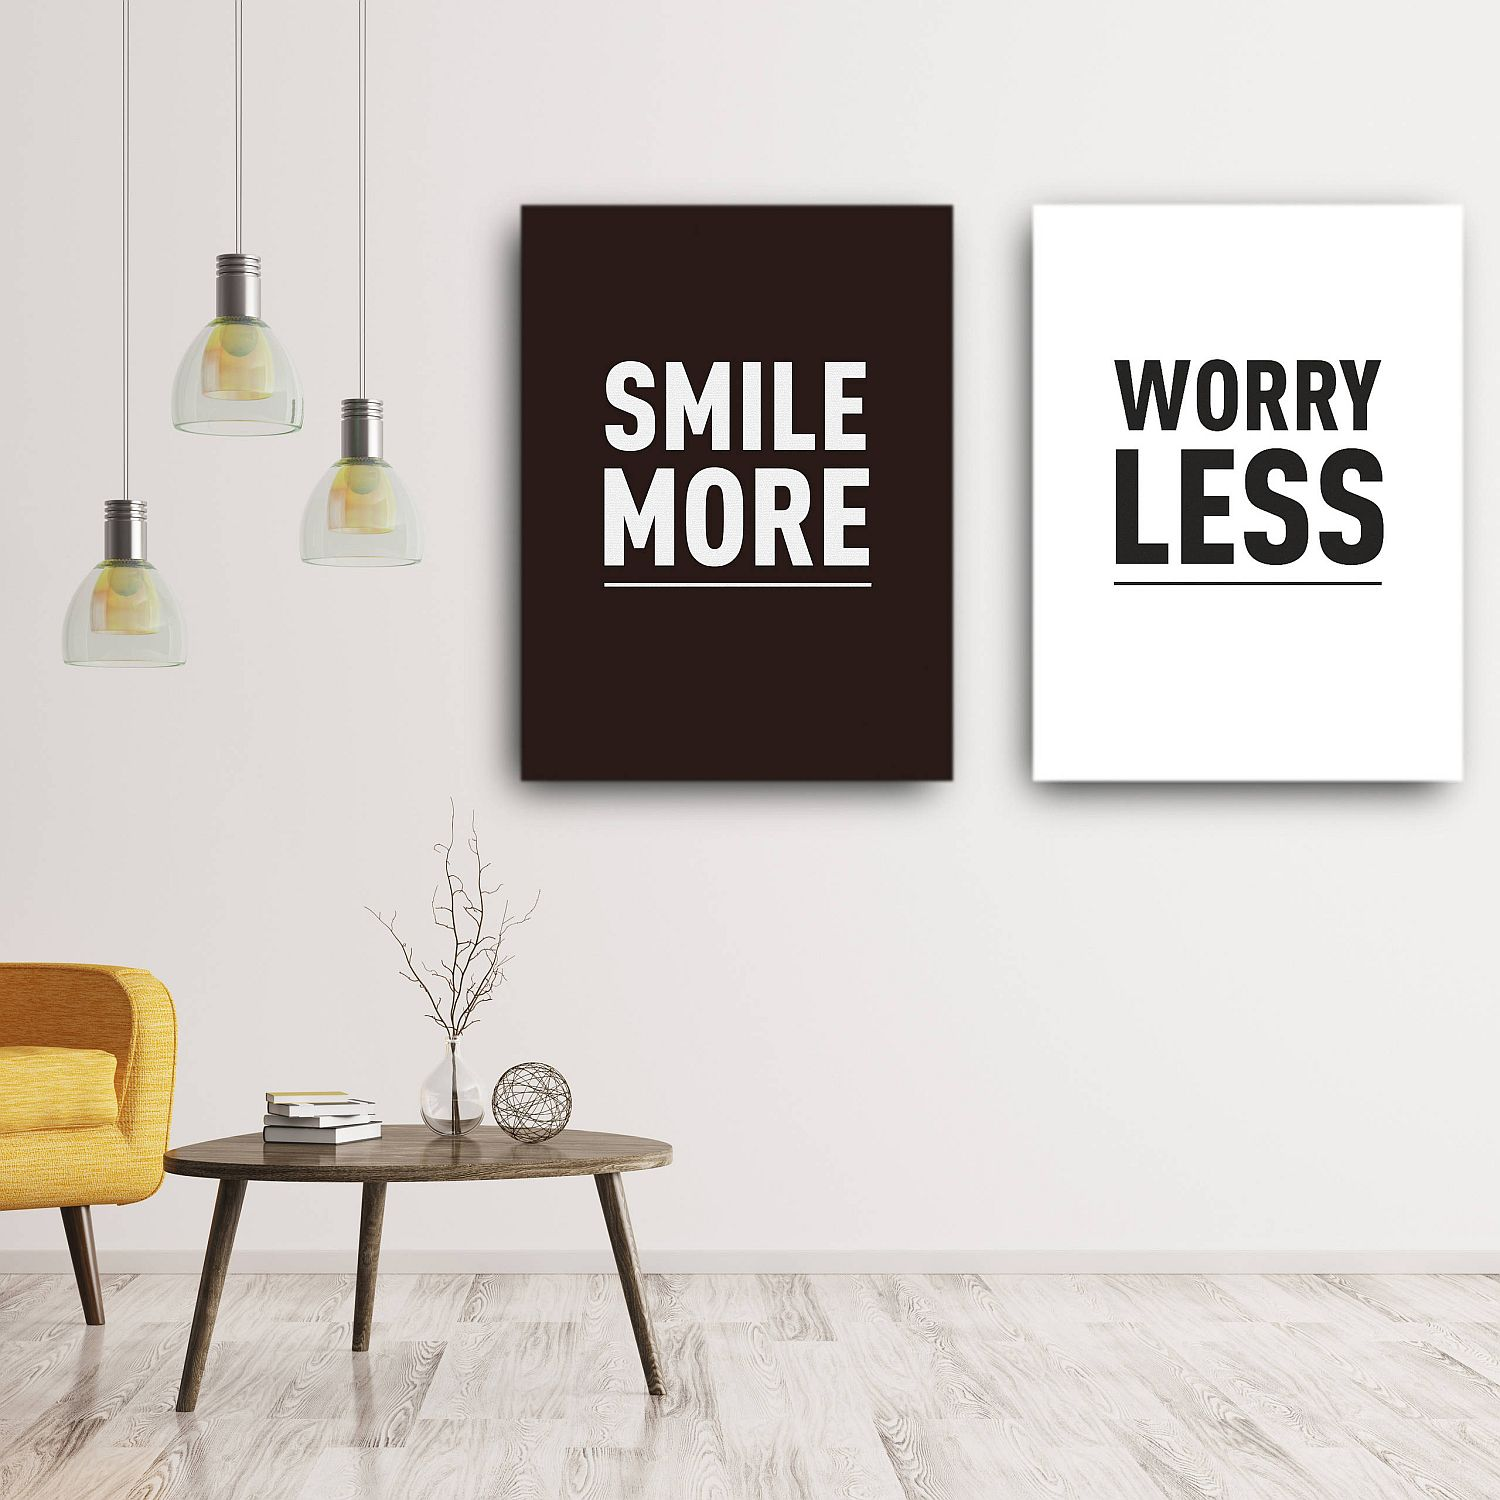 Choose a wall art piece that reflects your personal style along with the style of the room